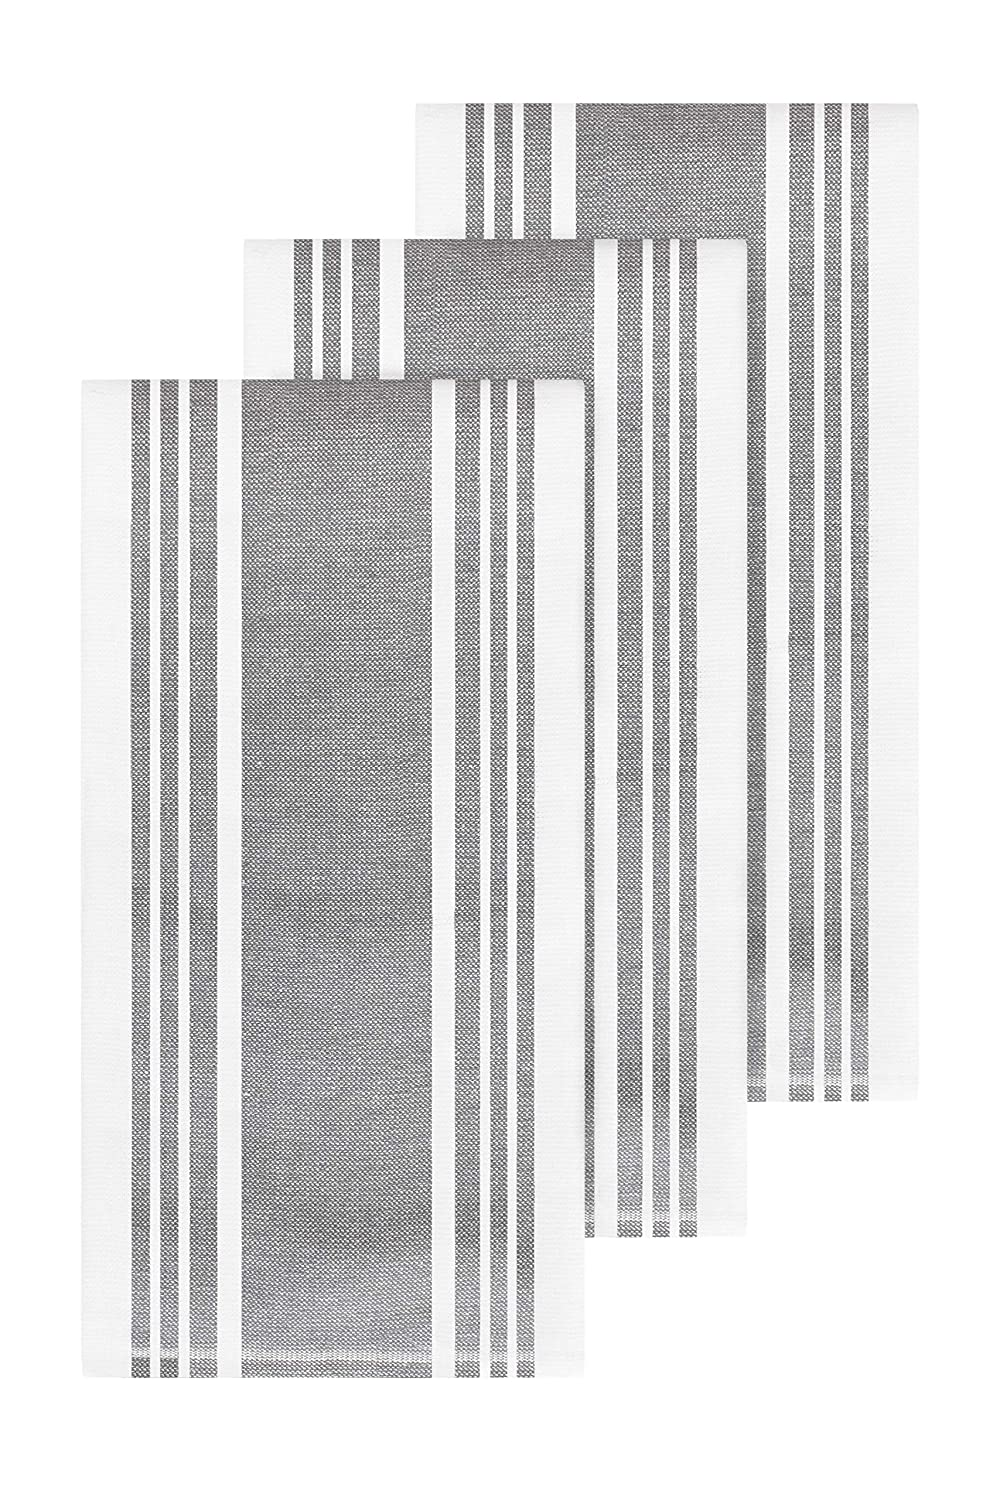 All-Clad Textiles 87170 Kitchen Towel, 3-Pack, Pewter